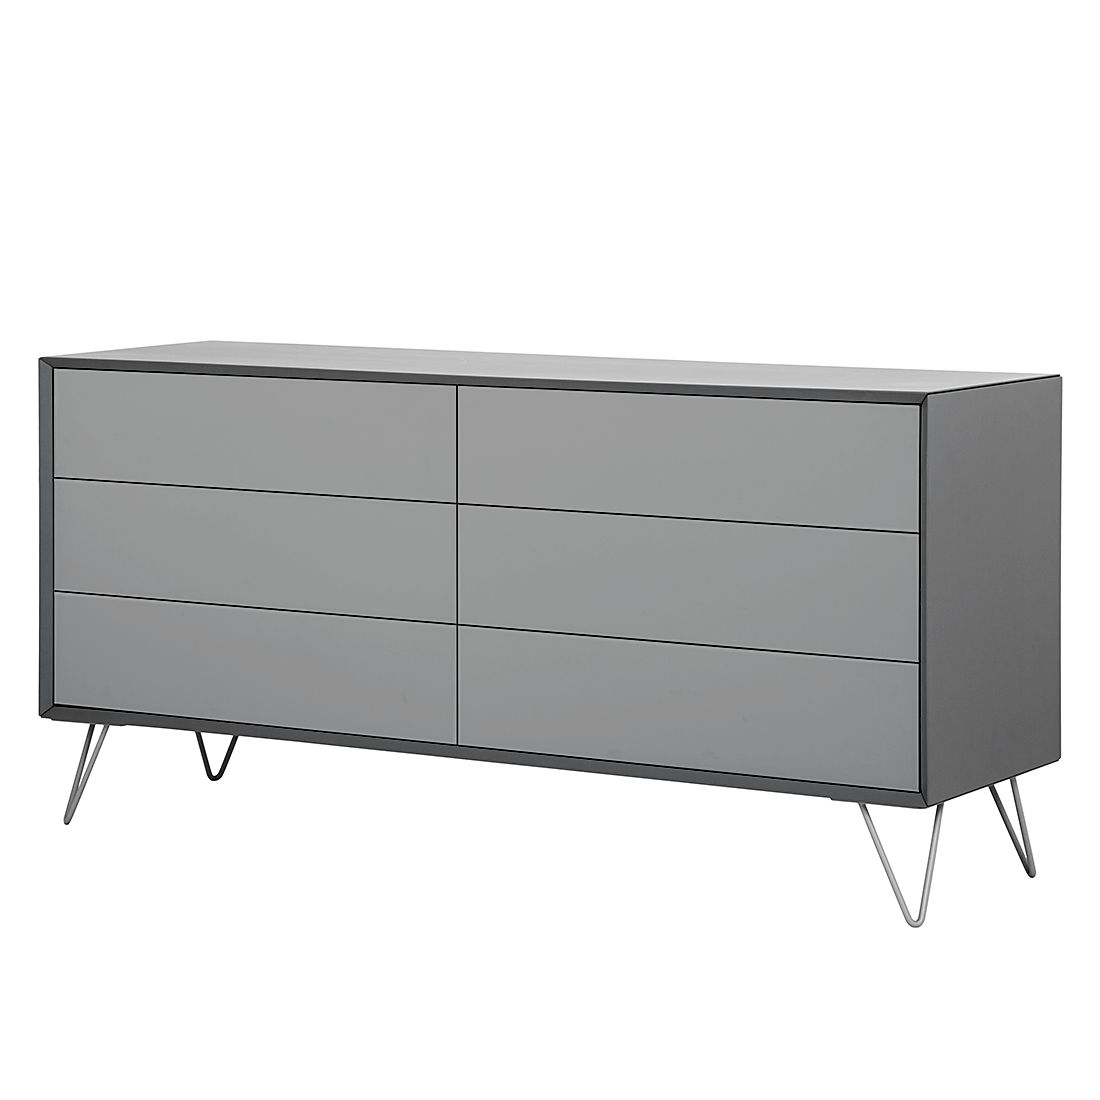 sideboard jerrell ii matt grau m rteens tipps vom einrichter. Black Bedroom Furniture Sets. Home Design Ideas